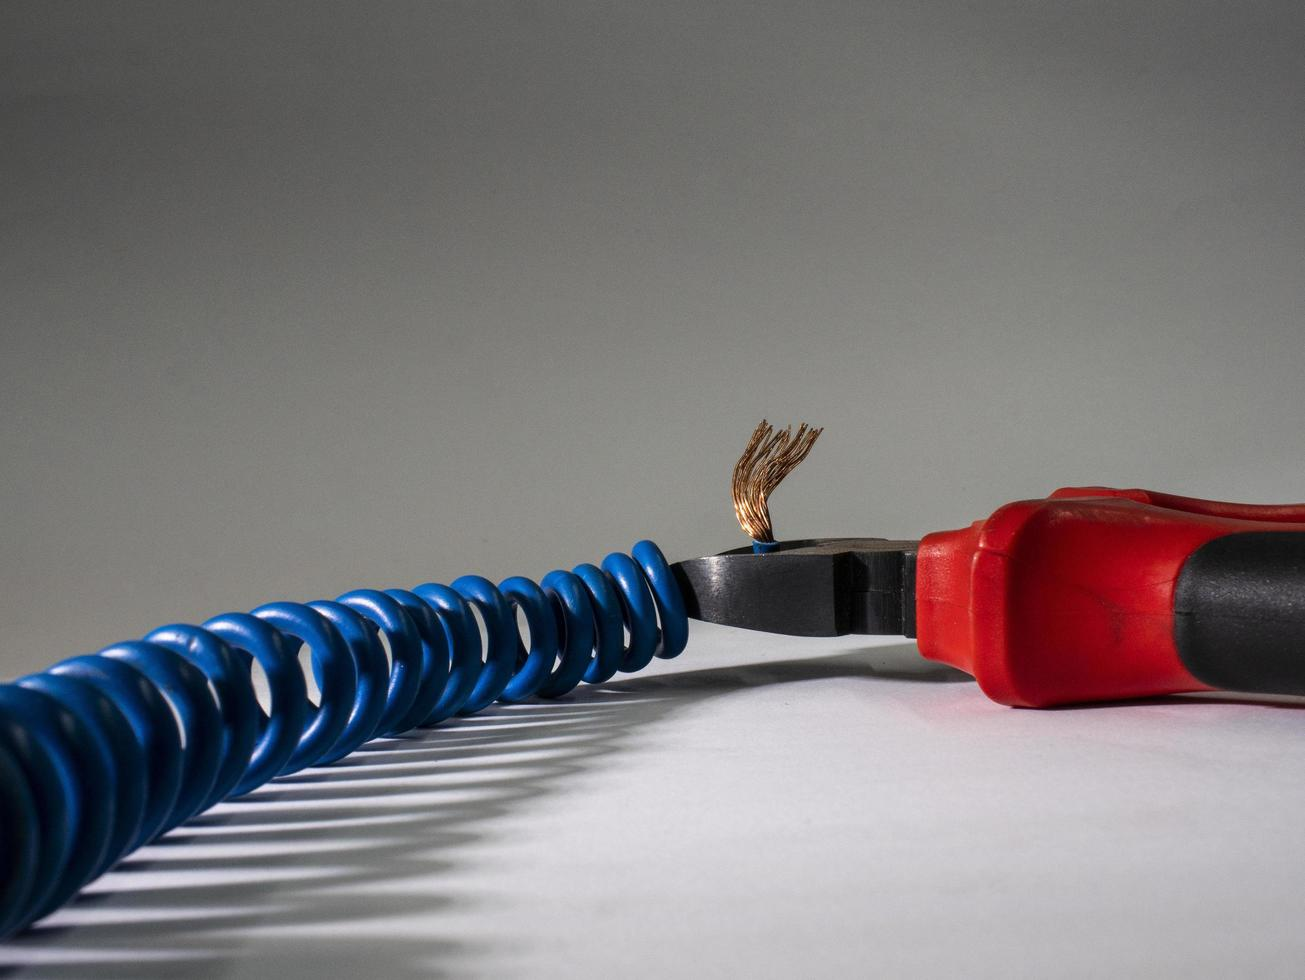 Close up of red pliers and blue twisted wire on white background.Pliers cutting cable photo